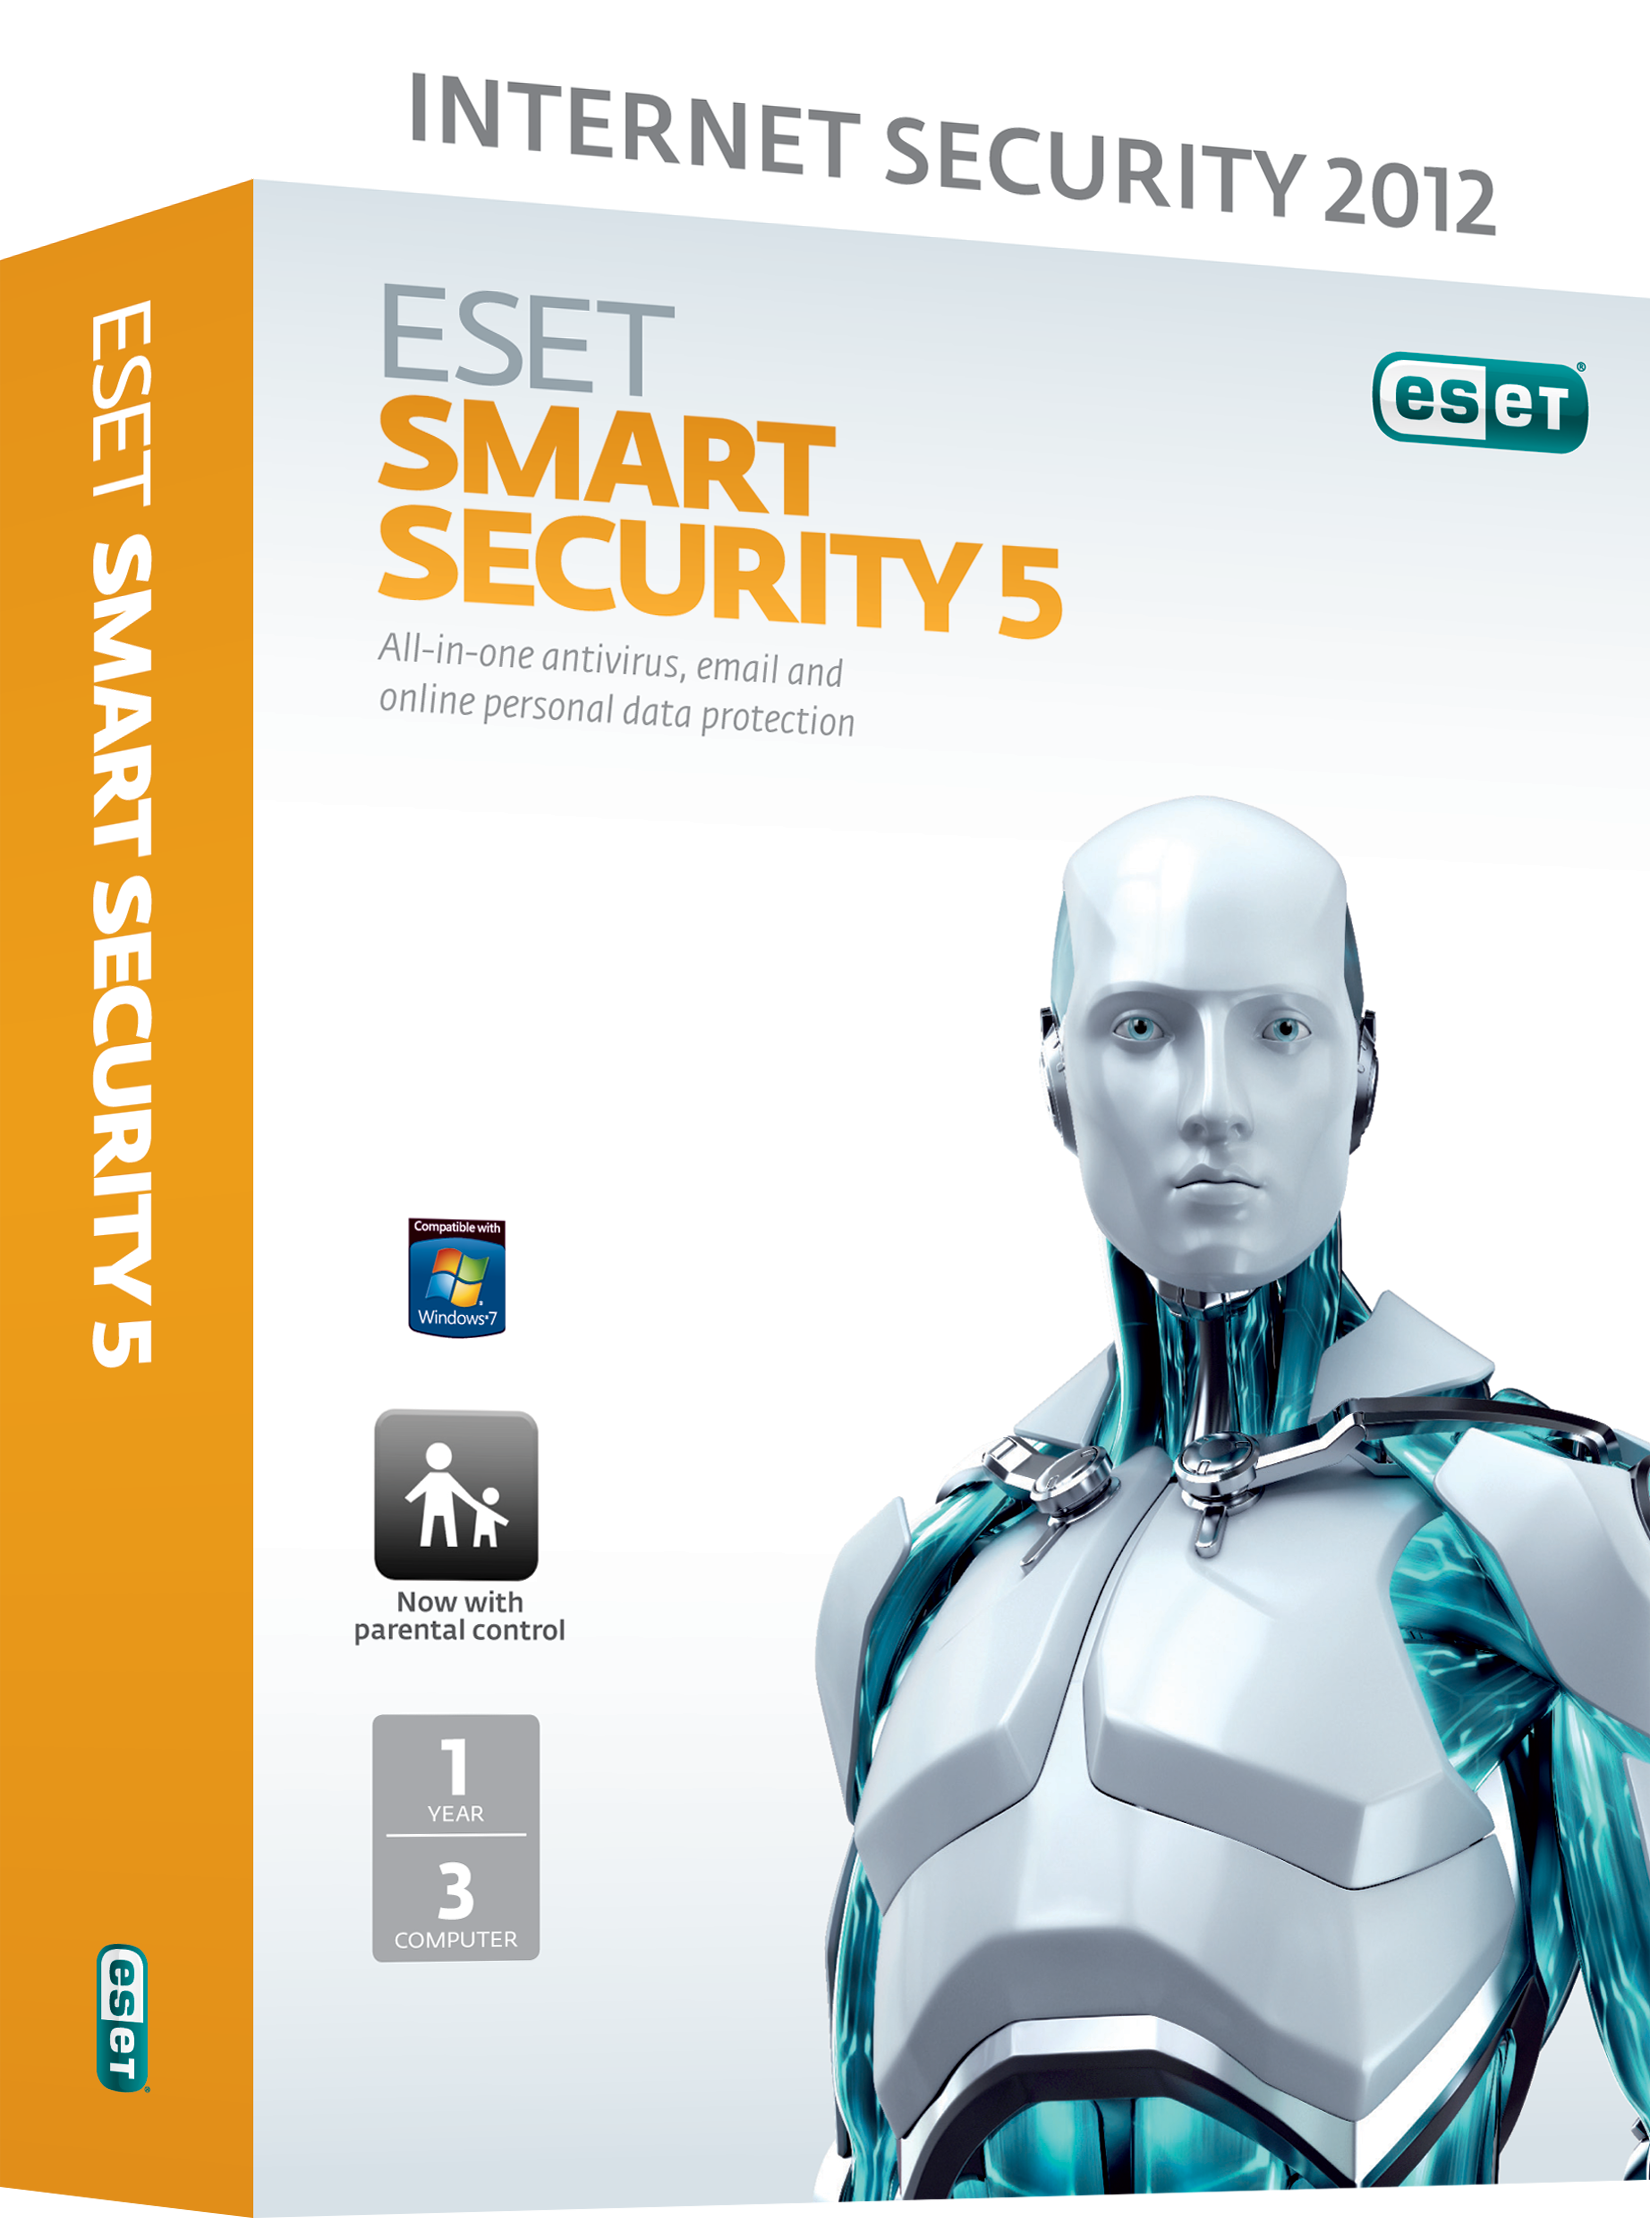 Download eset endpoint security for windows | eset.